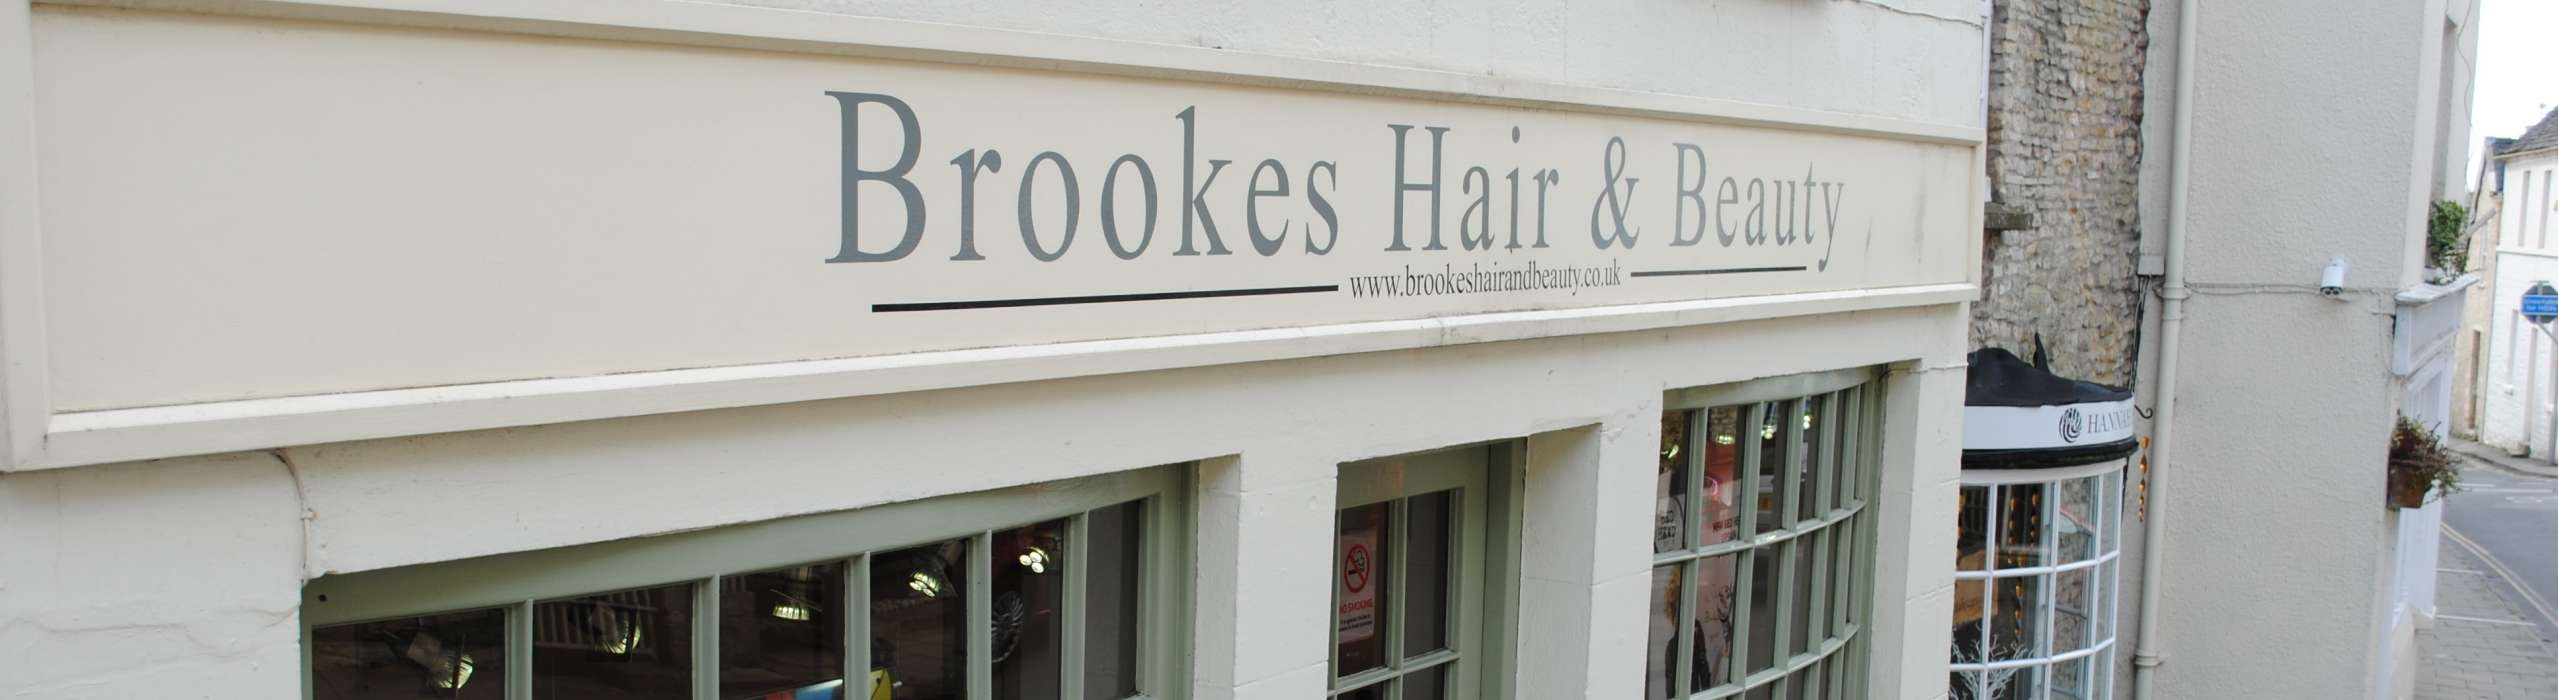 brookes hair & beauty